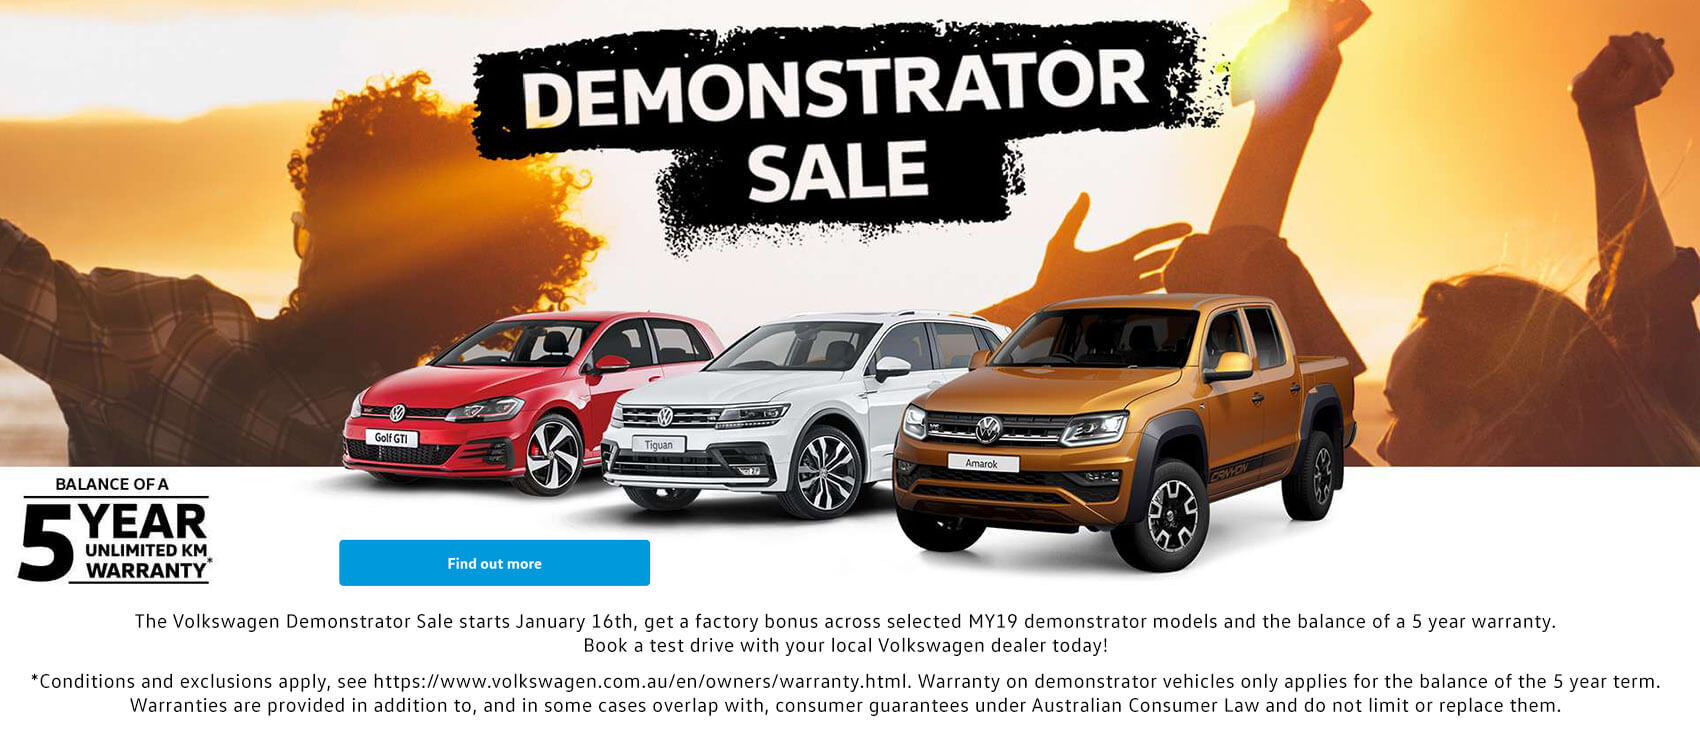 The Volkswagen Demonstrator Sale starts January 16th, get a factory bonus across selected MY19 demonstrator models and the balance of a 5 year warranty. Book a test drive with Castle Hill Volkswagen